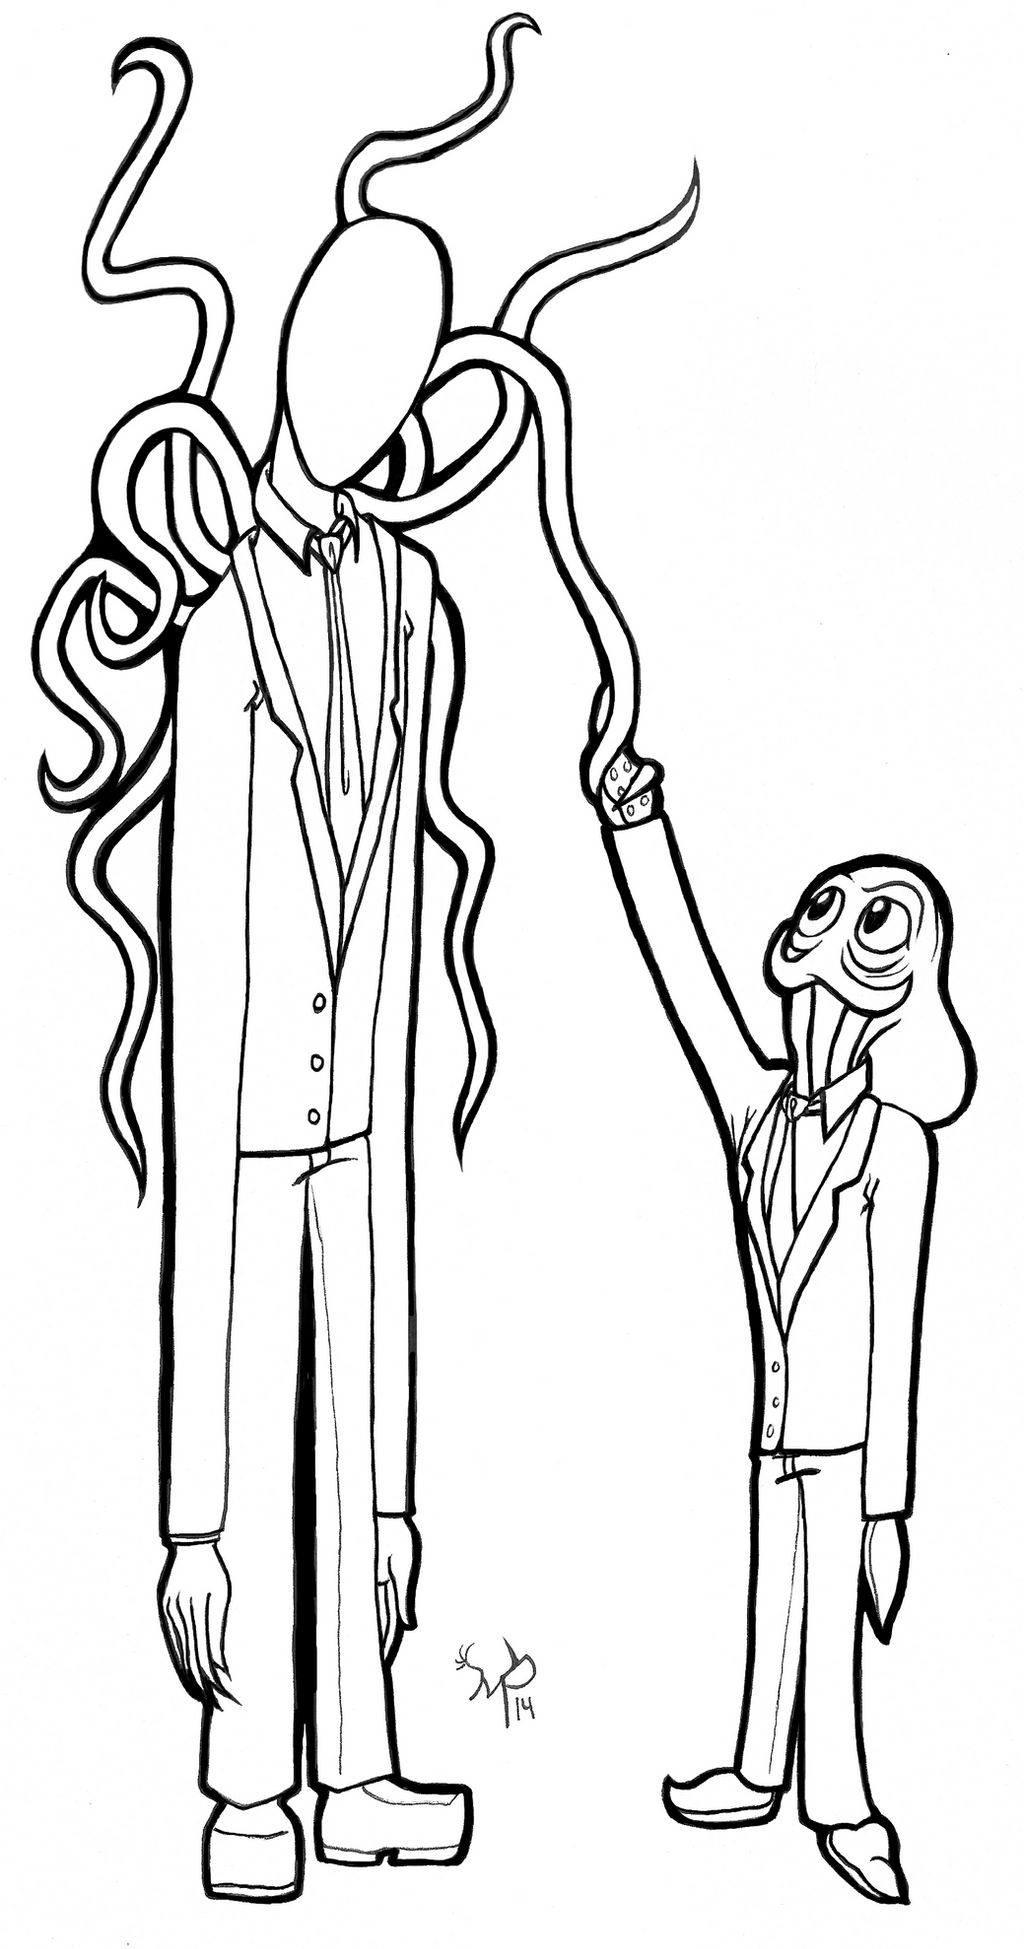 Hoodie creepypasta coloring coloring coloring pages for Slender man coloring pages